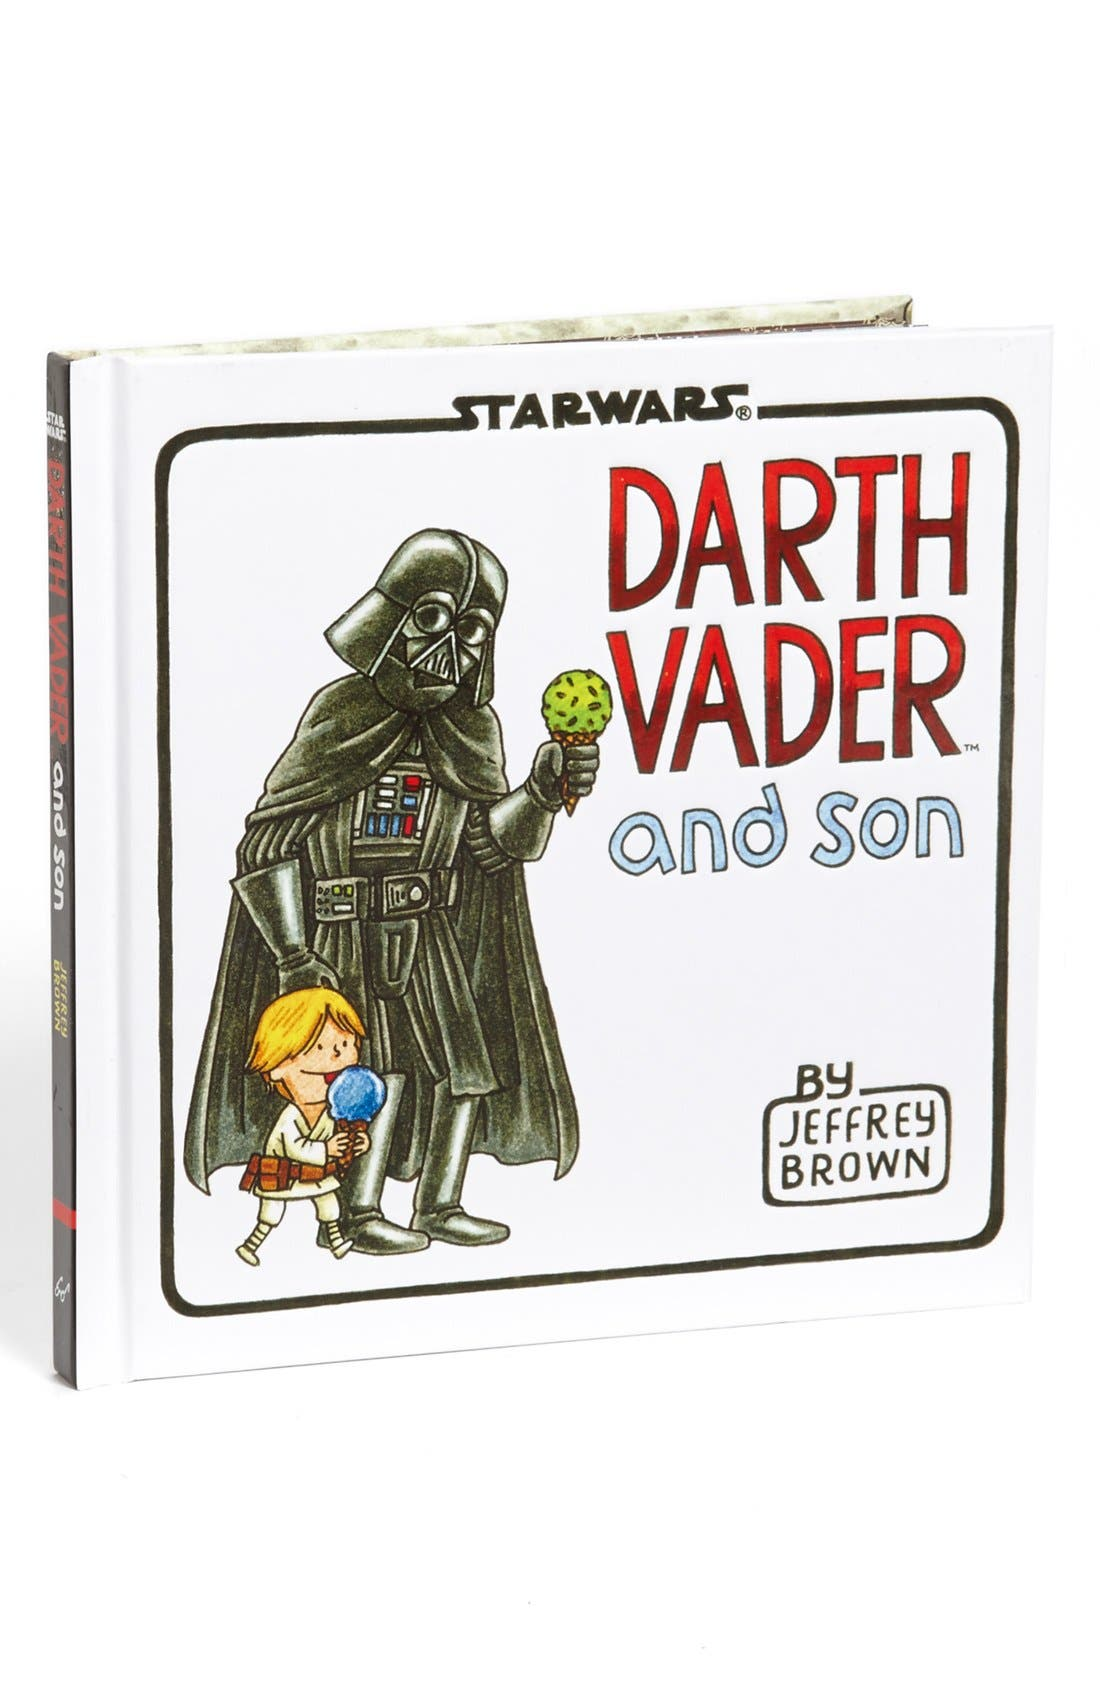 Alternate Image 1 Selected - 'Darth Vader and Son' Book